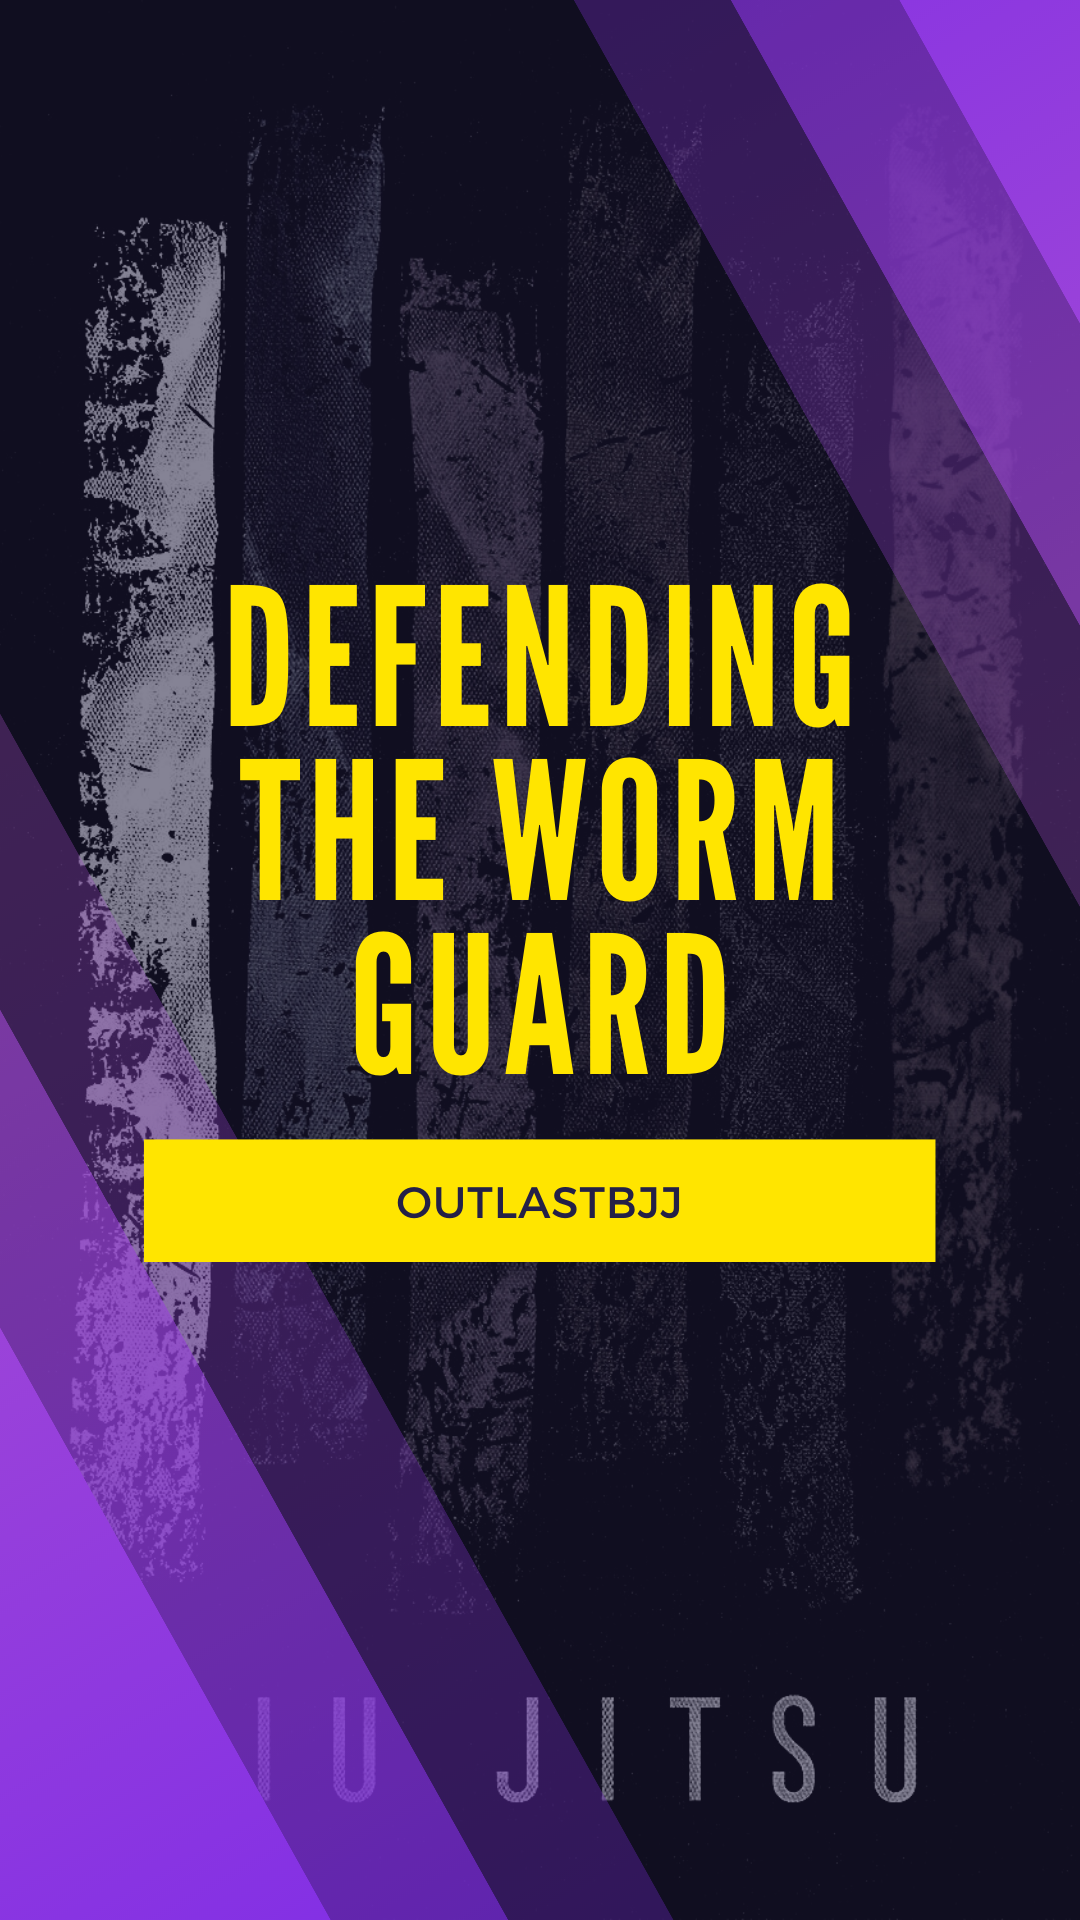 Defending the Worm Guard